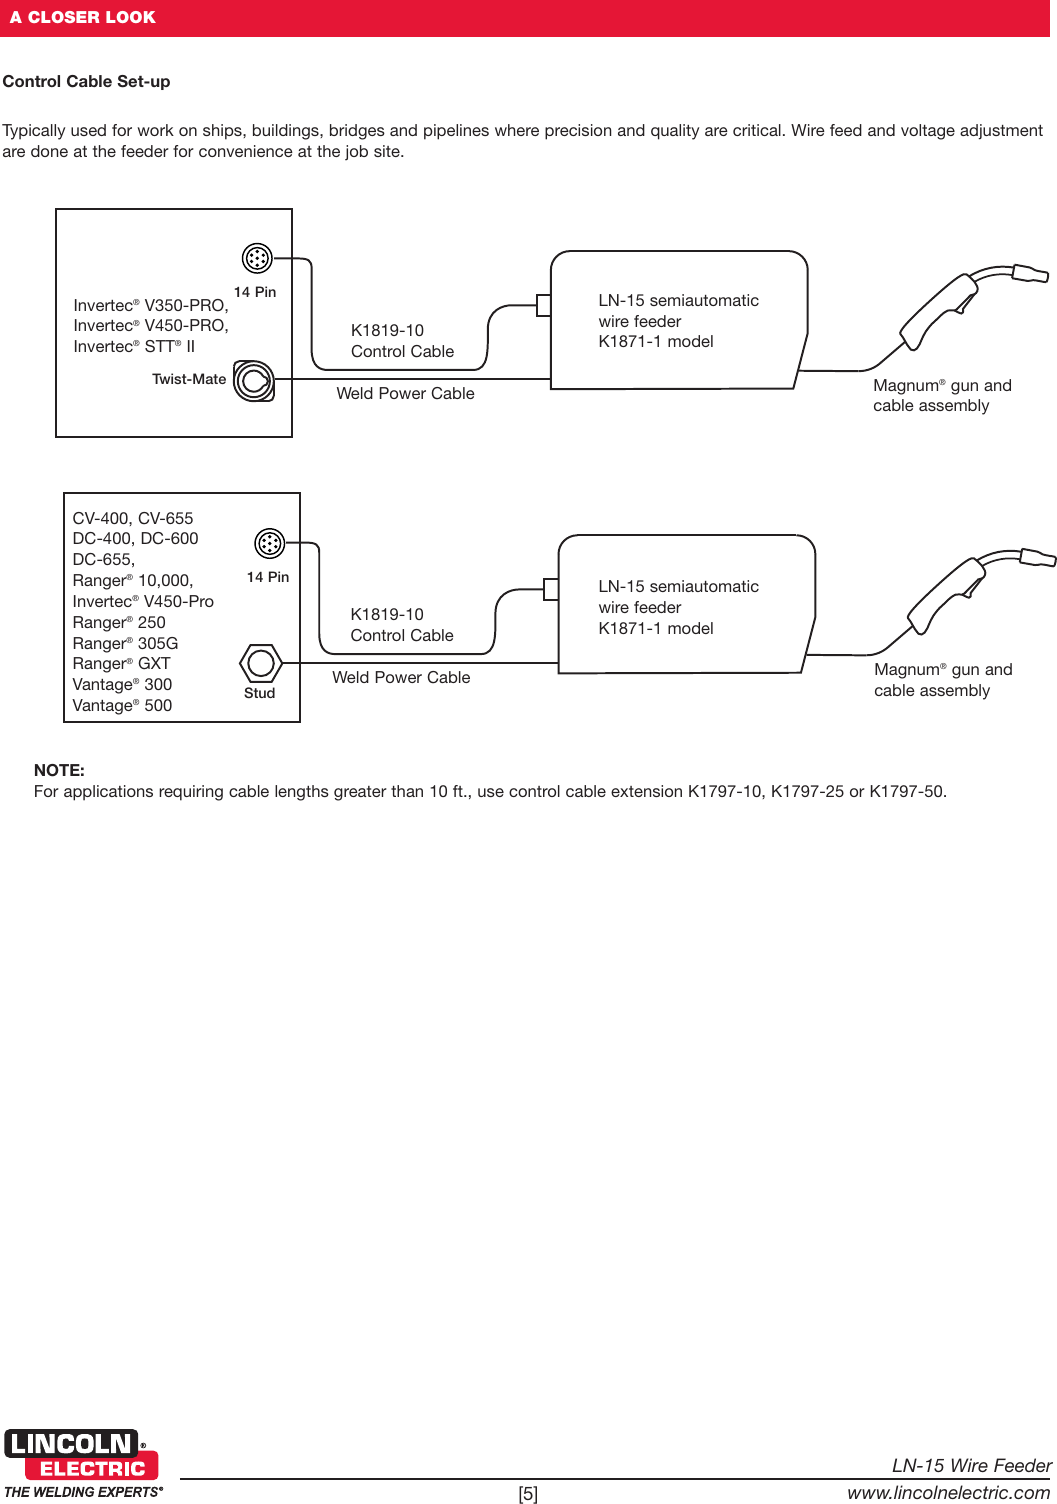 Lincoln Electric Ln 15 Users Manual Semiautomatic Wire Feeders Diagram Page 5 Of 8